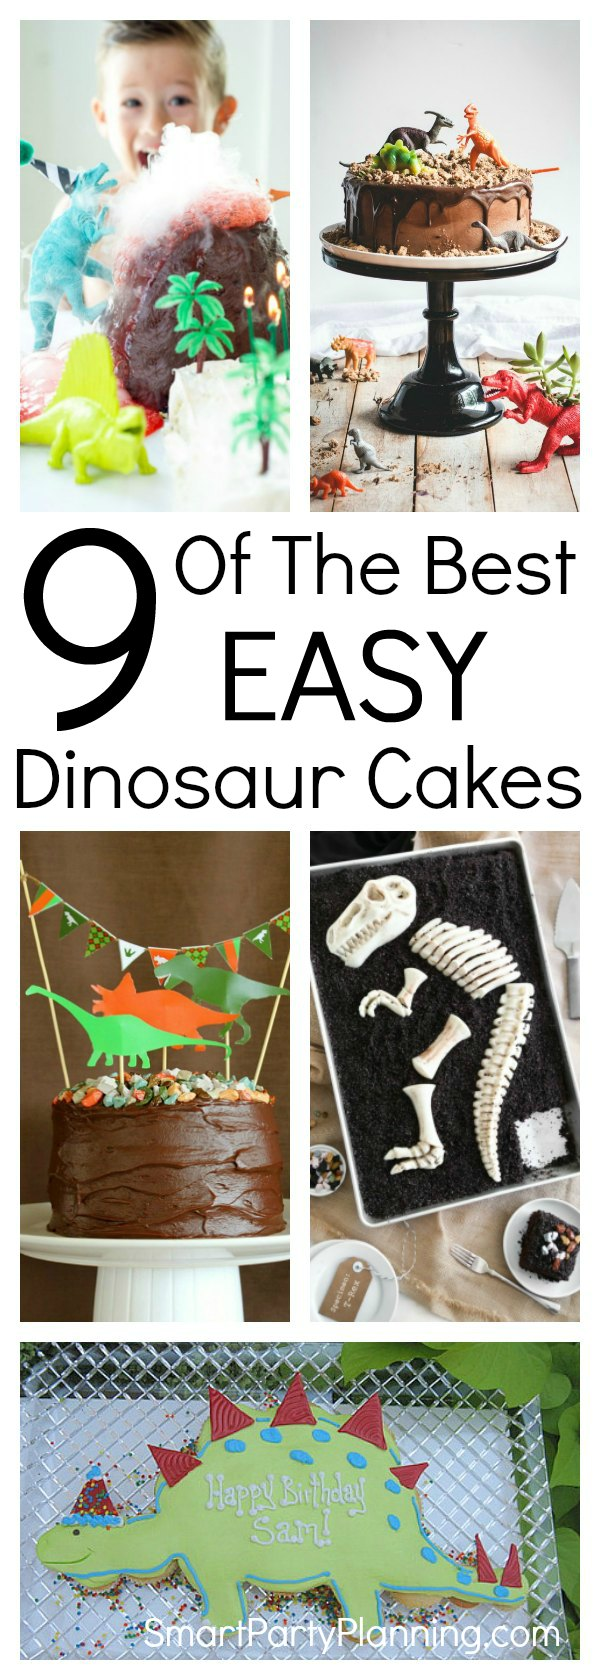 Learn how to make easy dinosaur cakes for a birthday the kids will remember forever. With simple ideas and tutorials, you will have just as much fun making the cake as the kids will eating it. It's easier than you think to make an impressive DIY cake.